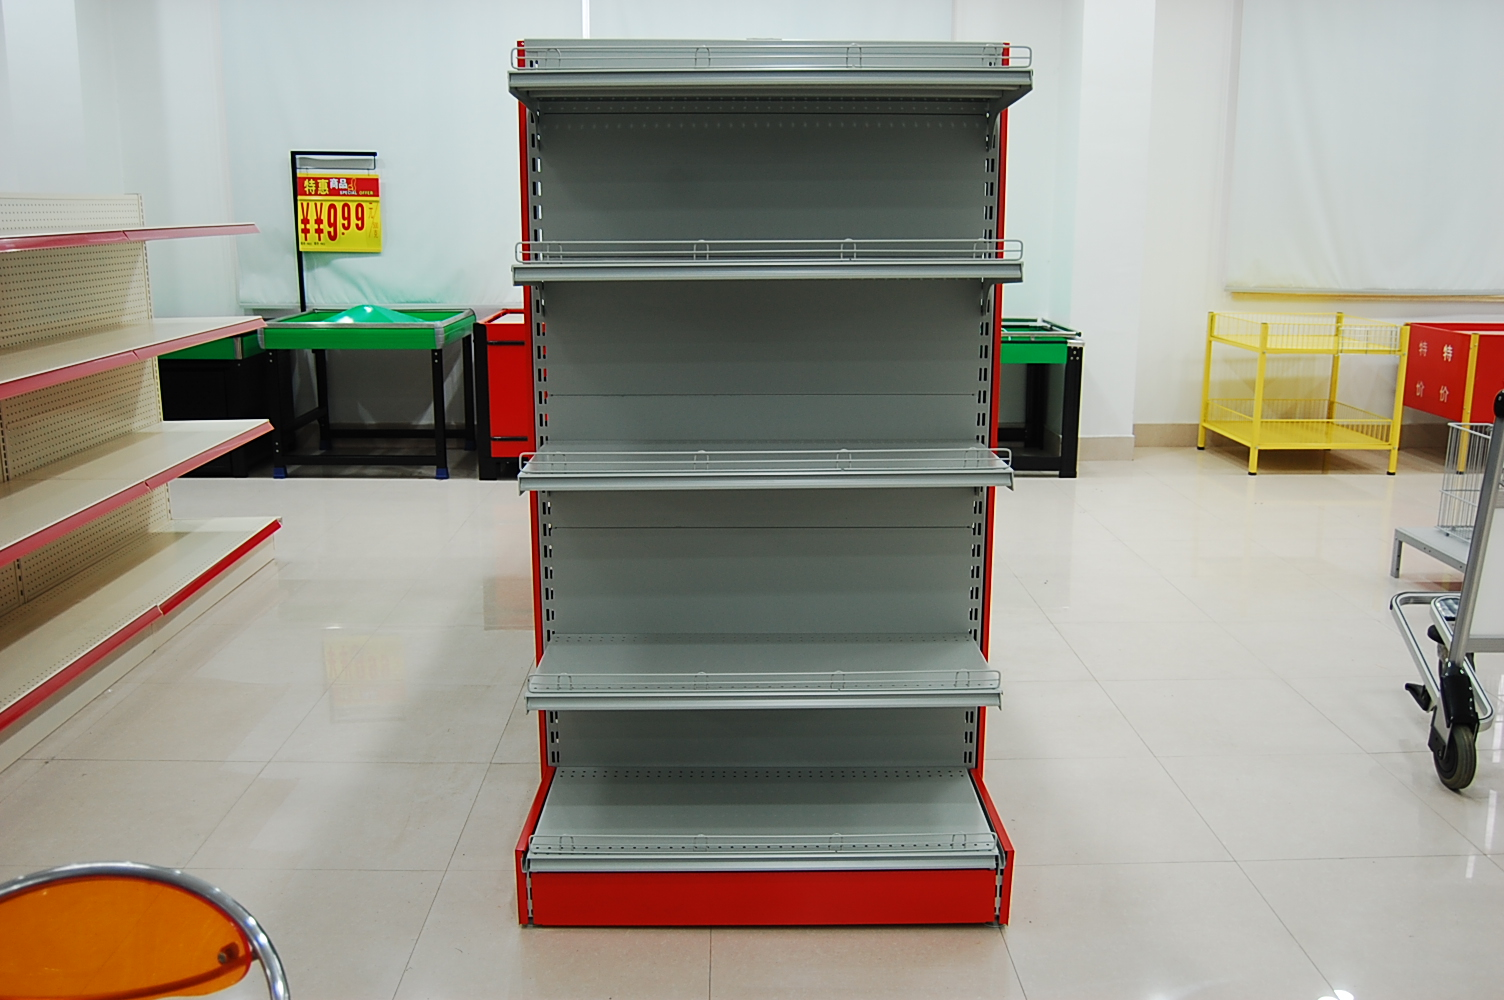 supermarket shelf (shanghai type)